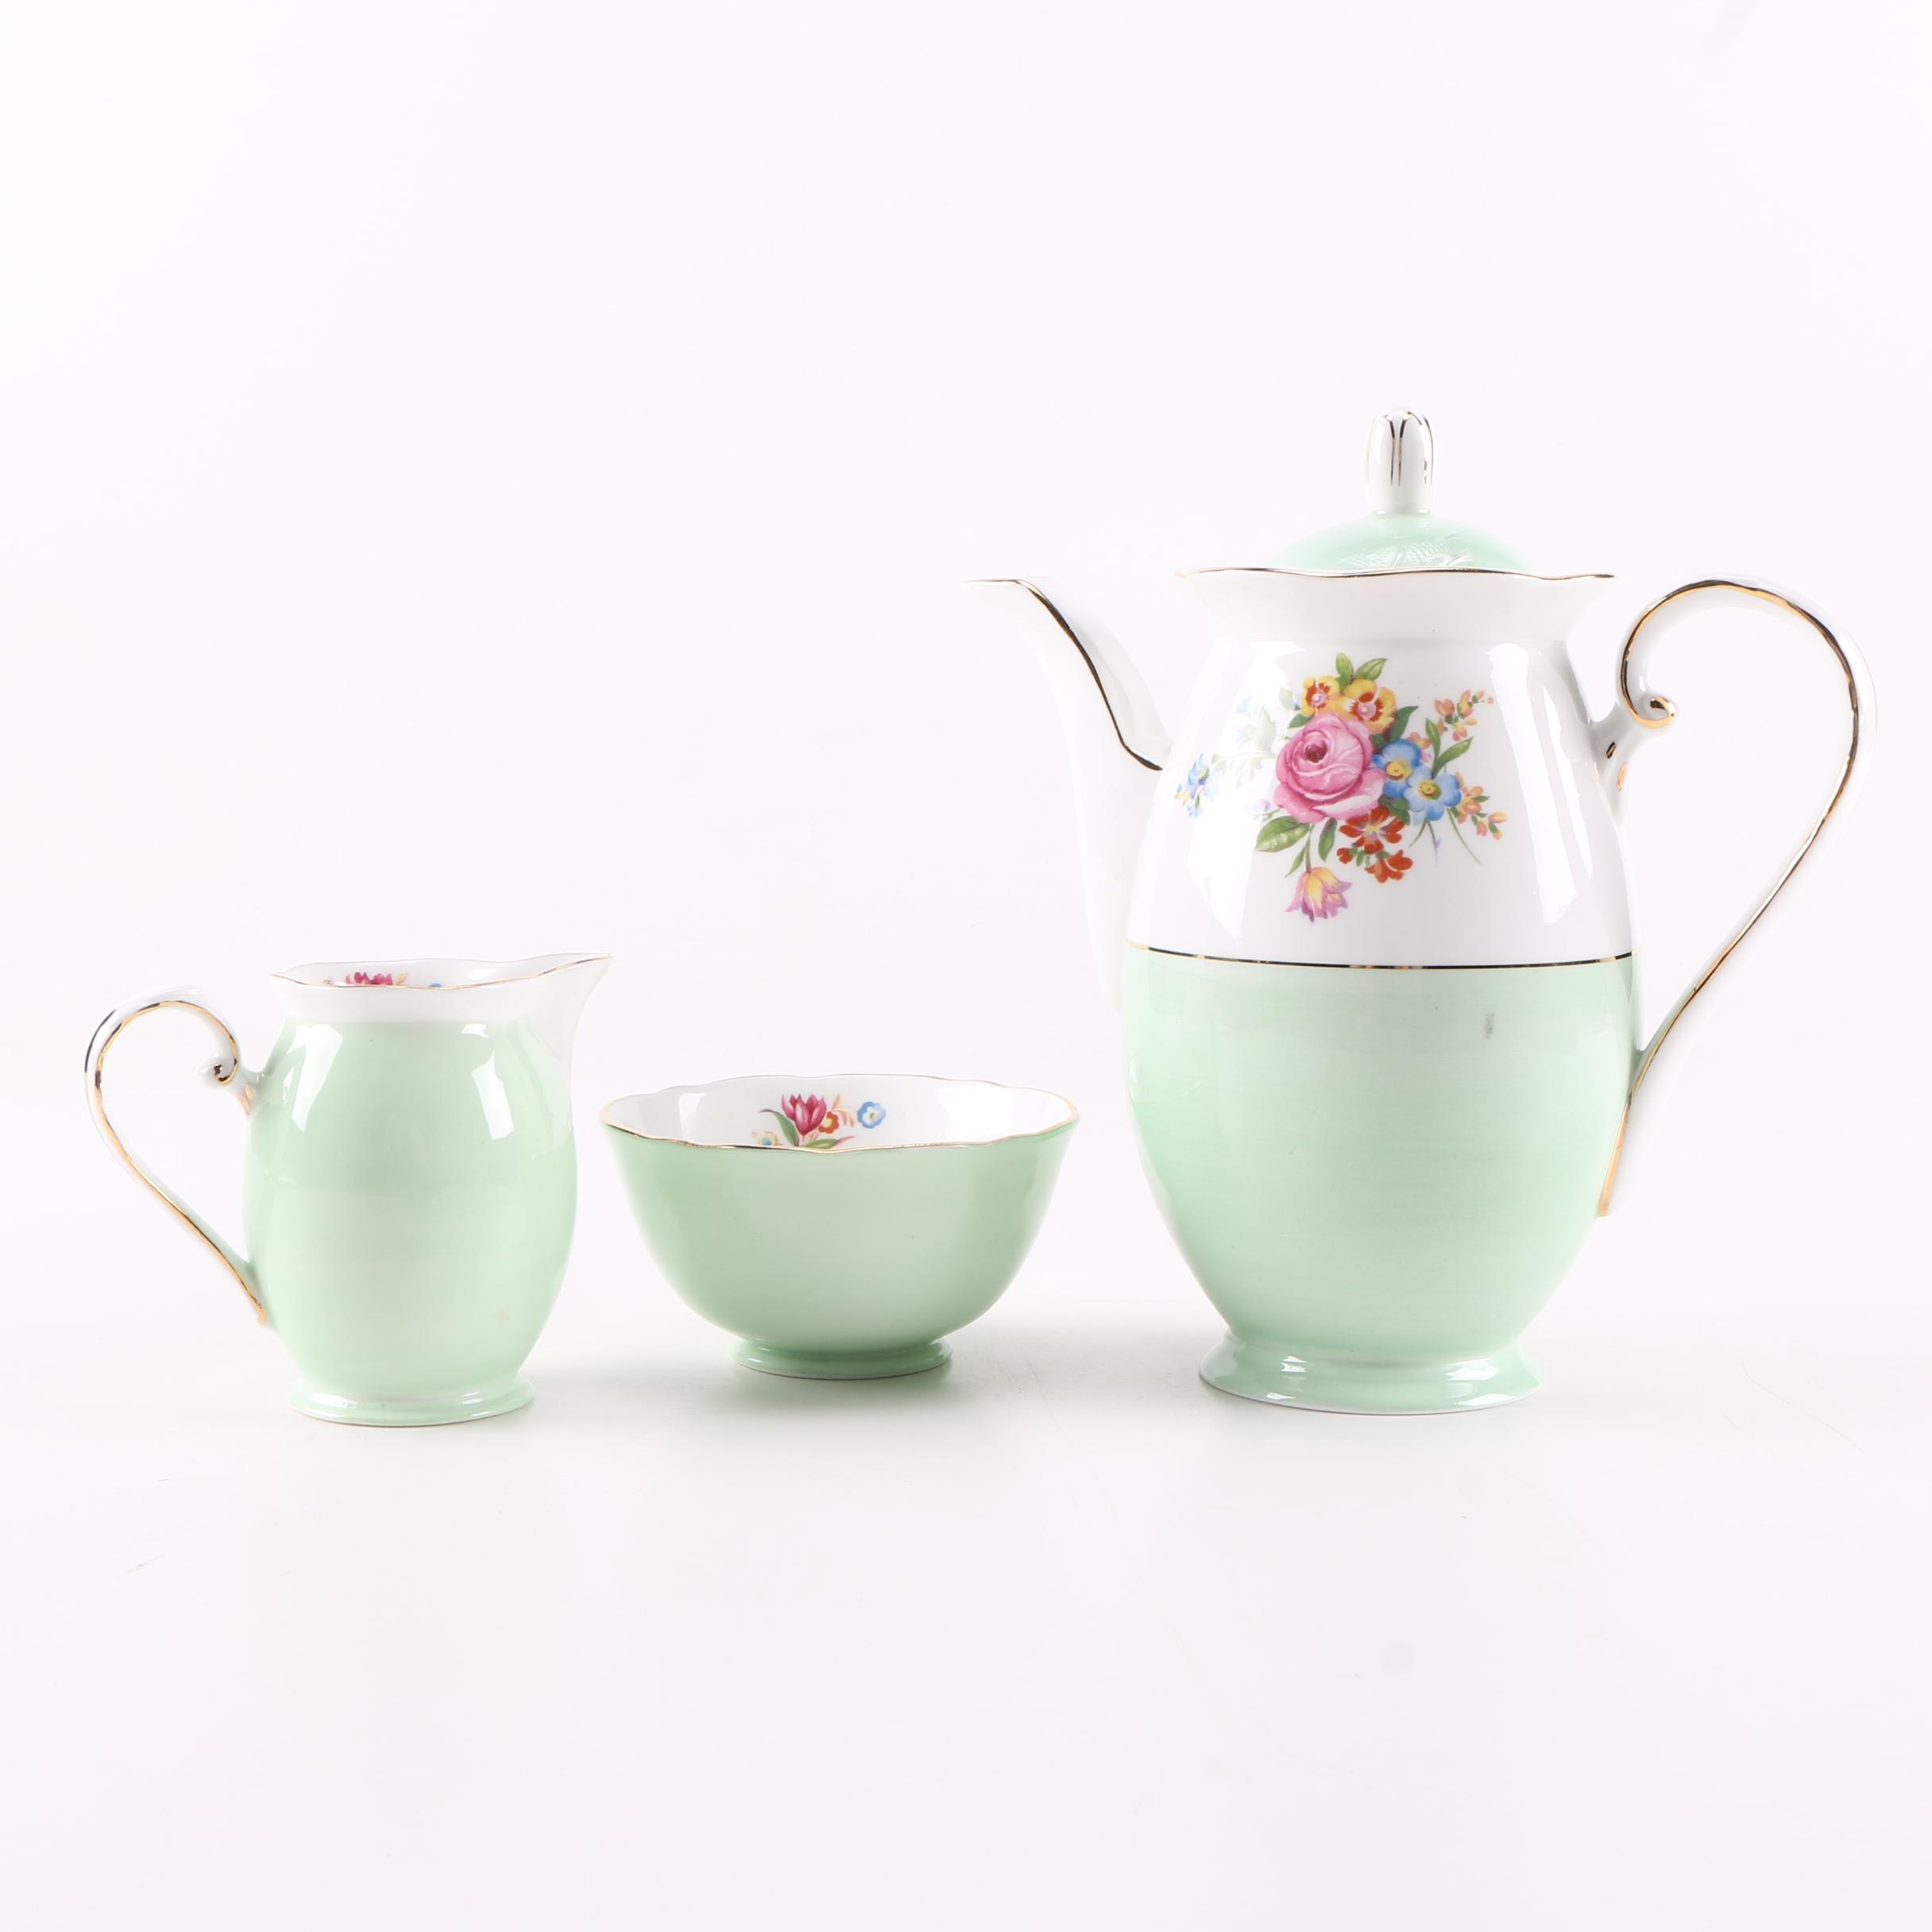 Royal Grafton Porcelain Coffee Pot, Creamer and Sugar Bowl